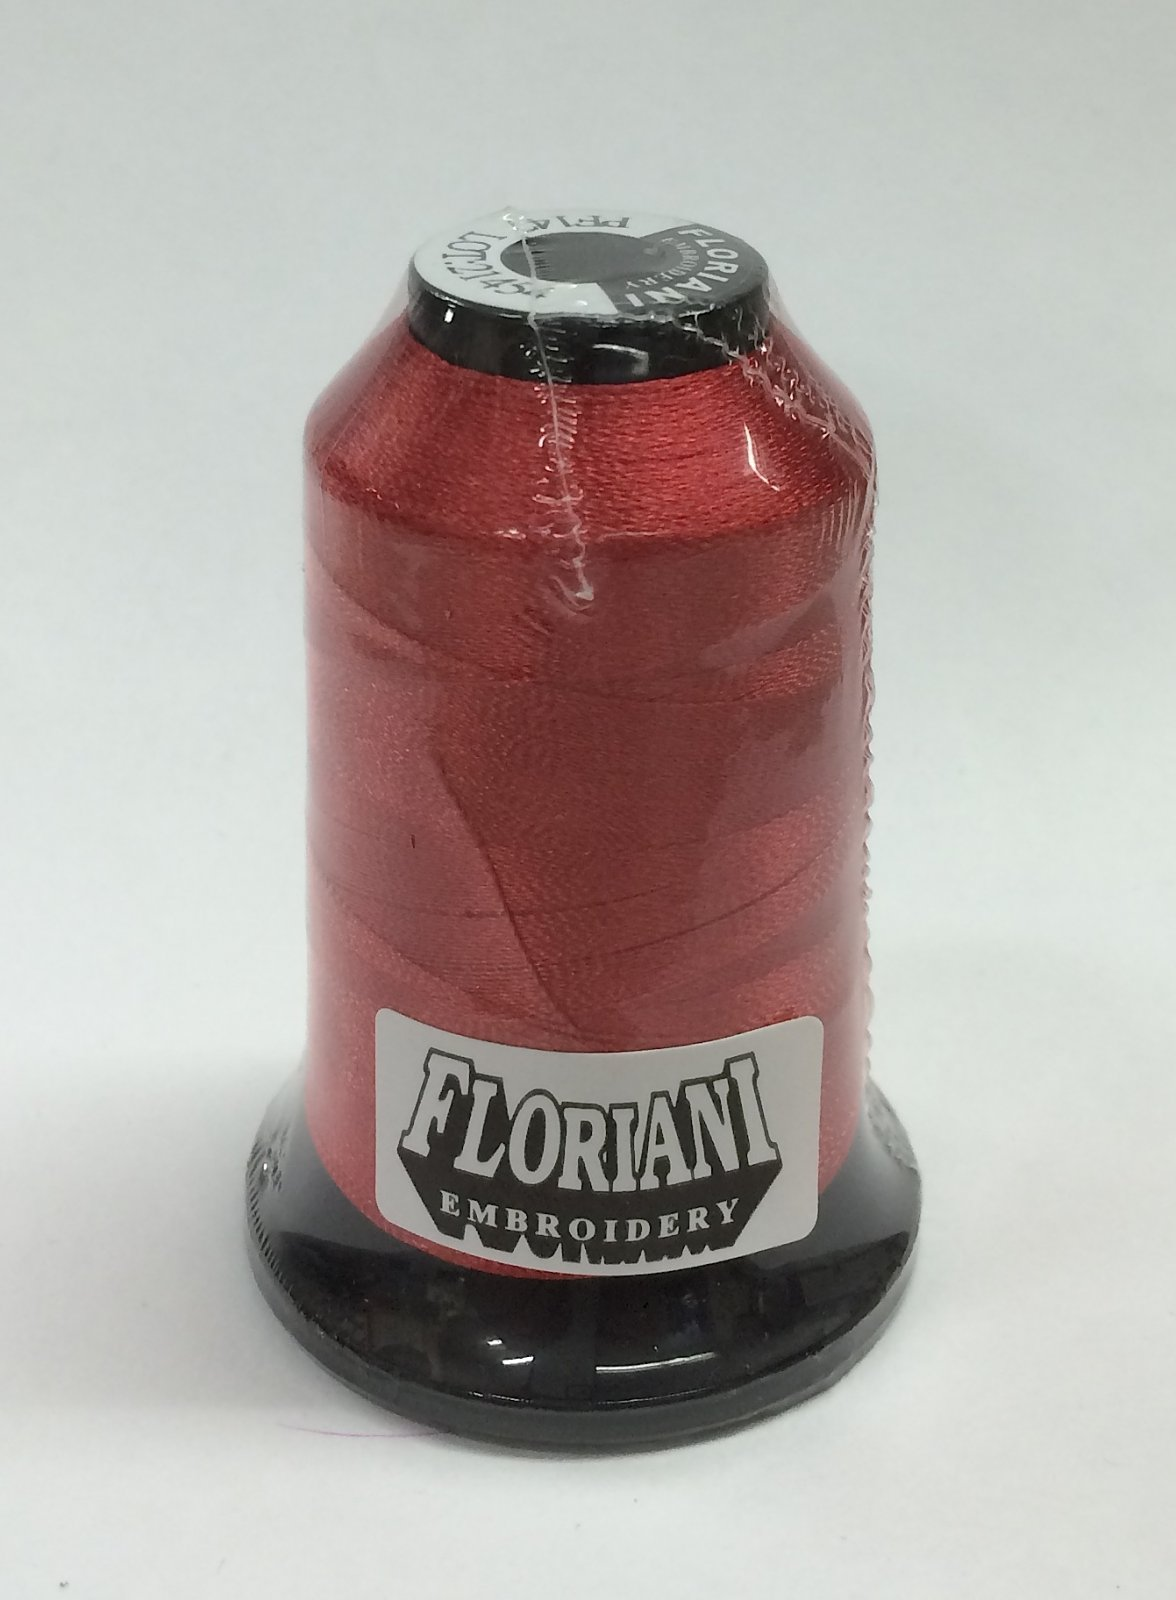 Floriani Embroidery Thread Color #0147